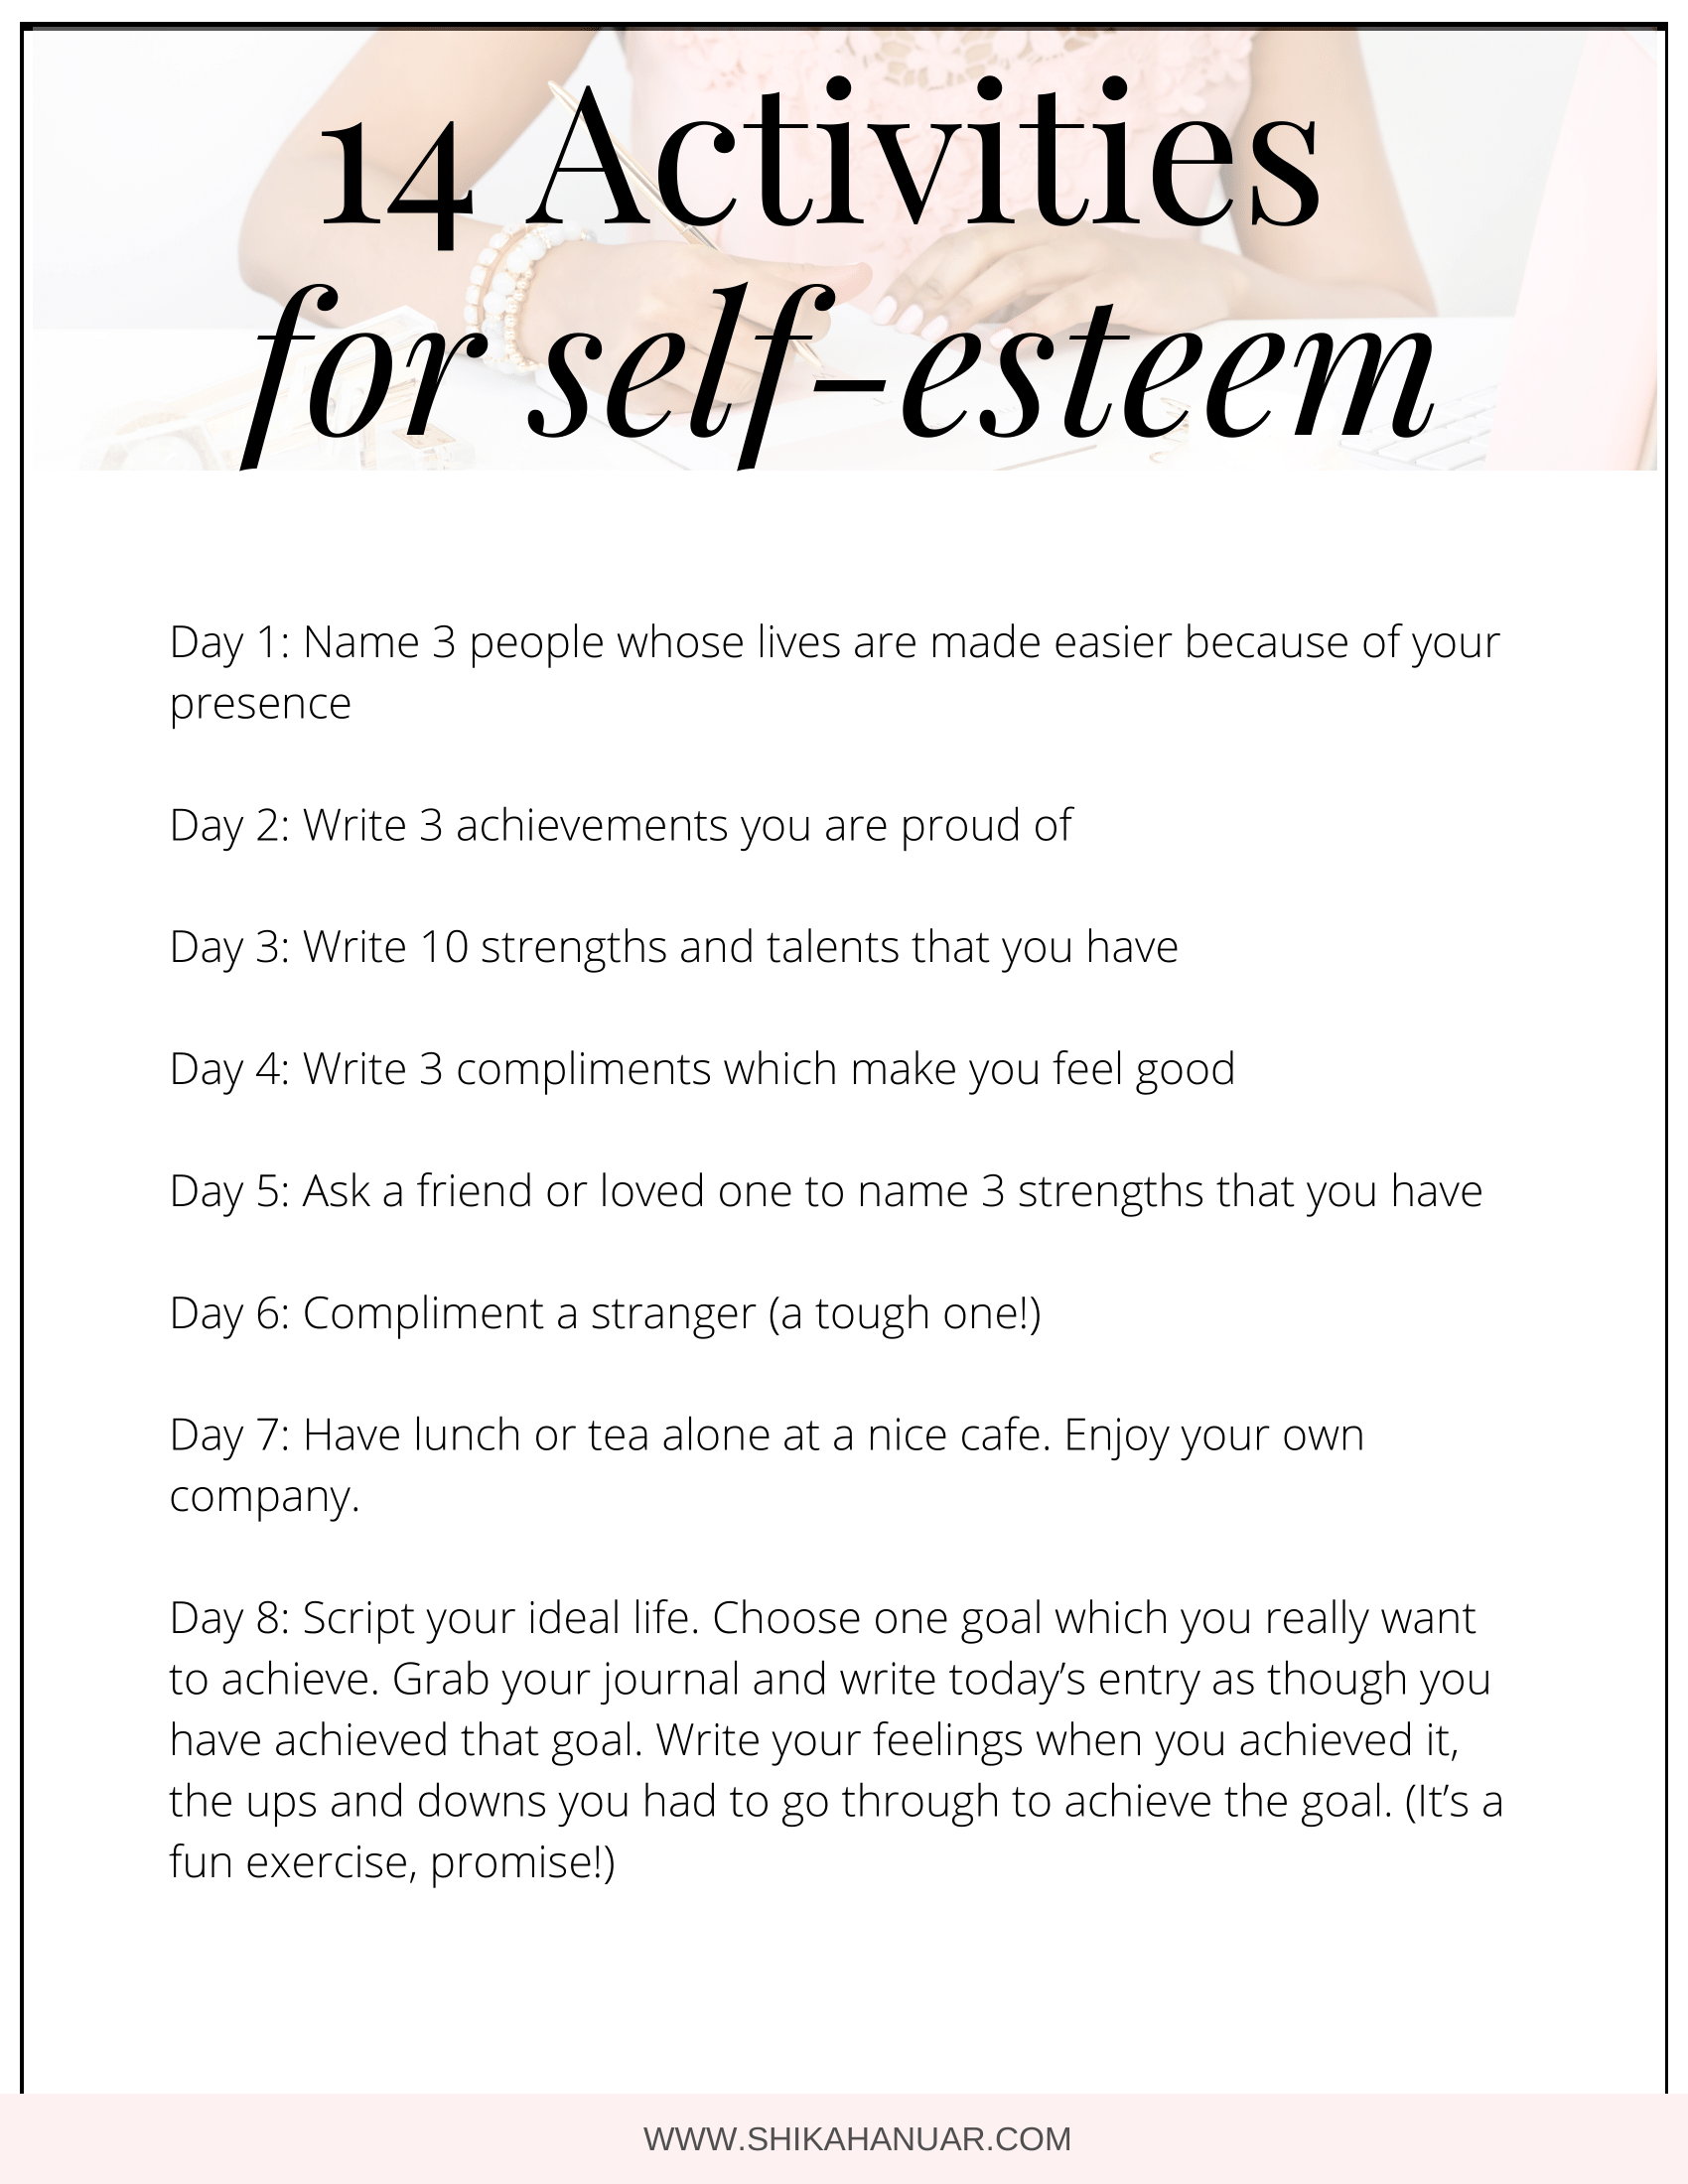 14 Activities To Build Your Self-Esteem And Self-Worth